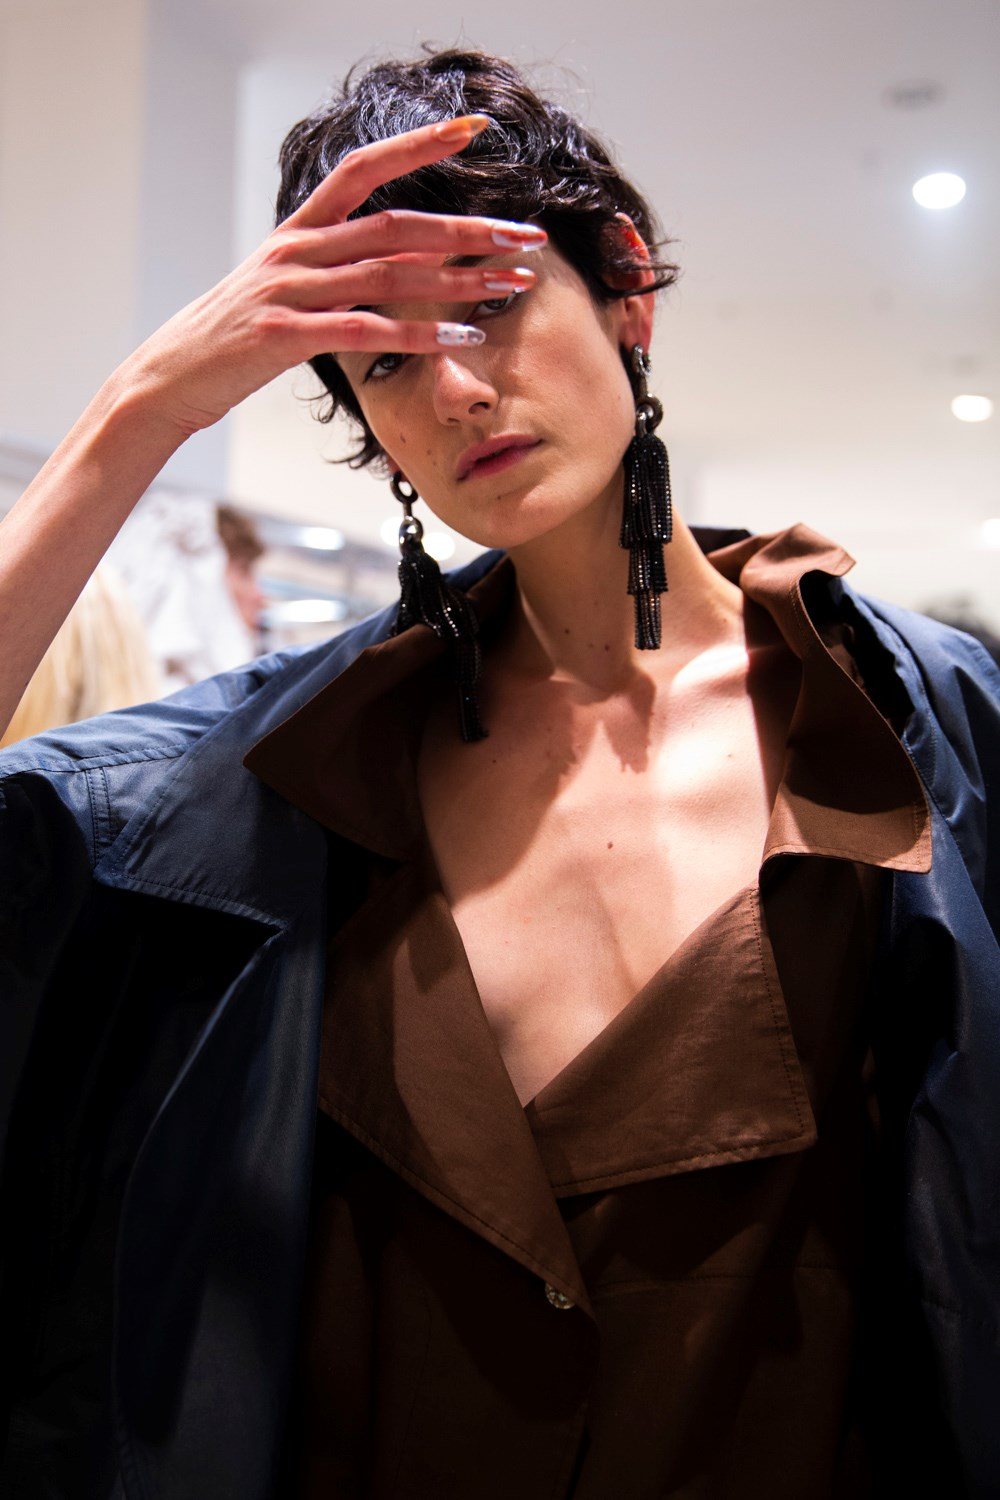 Andreas Kronthaler For Vivienne Westwood Spring 2020 Fashion Show Backstage